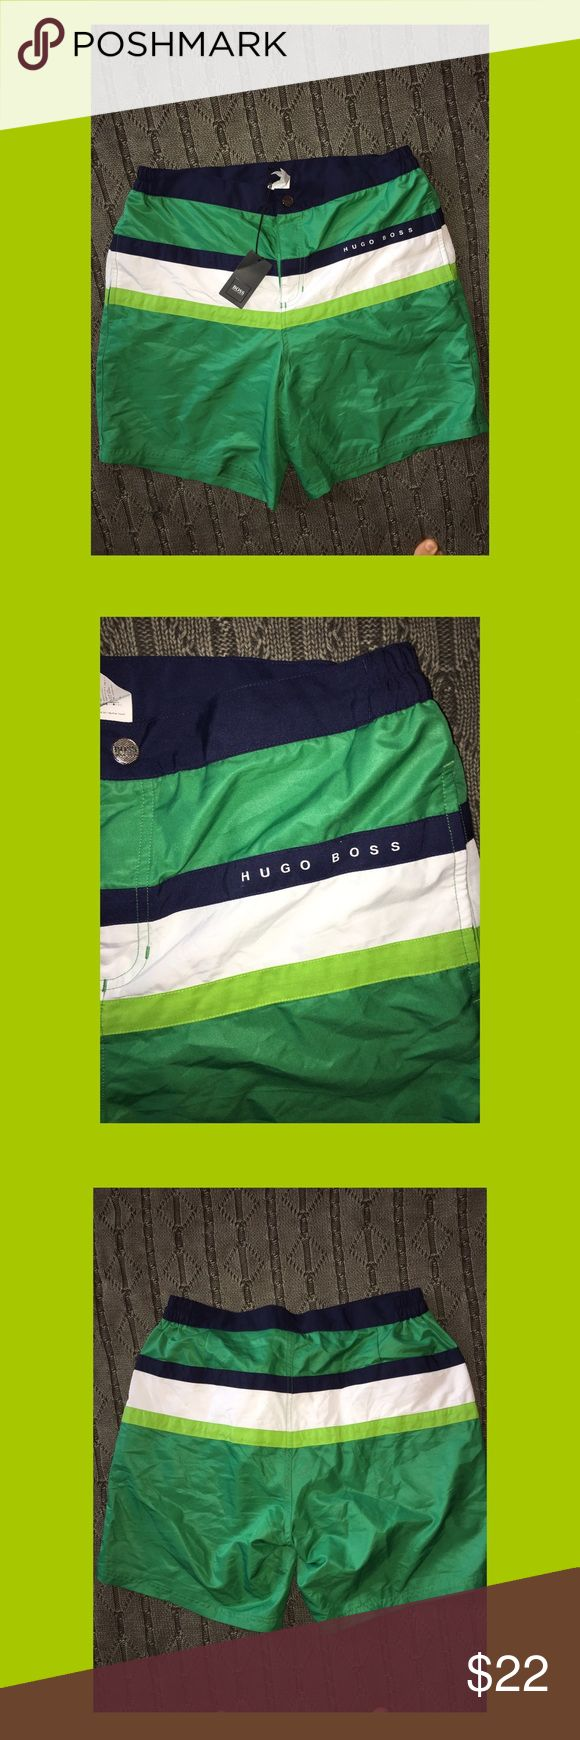 Men's Hugo Boss Green Swim Shorts NWT These are brand new with tags Hugo Boss swim shorts. They are emerald green with a lime green, white and navy stripe. There are two lines pockets and a front button closure with Velcro up the front. Hugo Boss Swim Swim Trunks